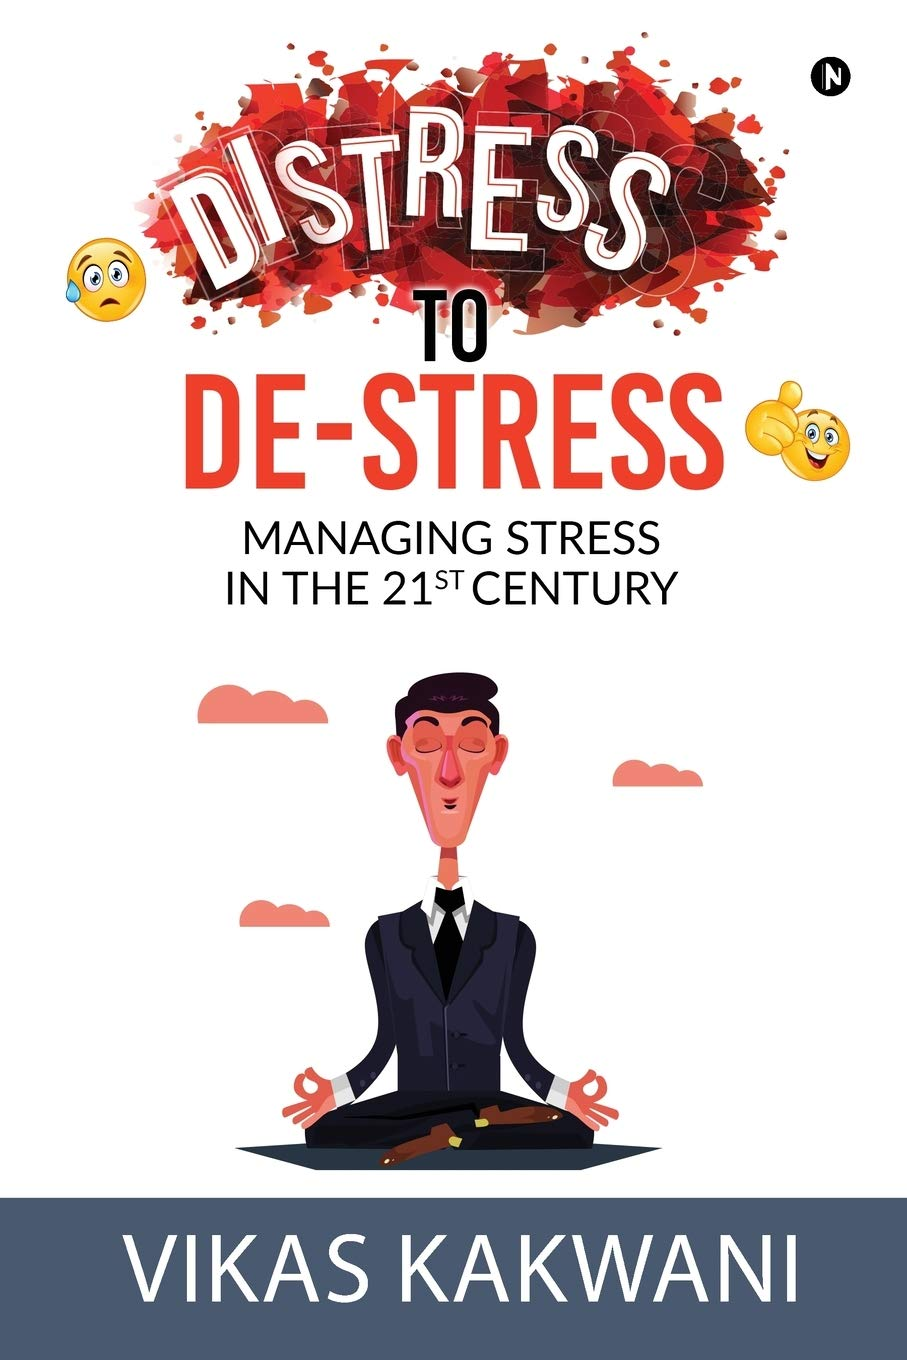 Buy Distress To De Stress Managing Stress In The 21st Century